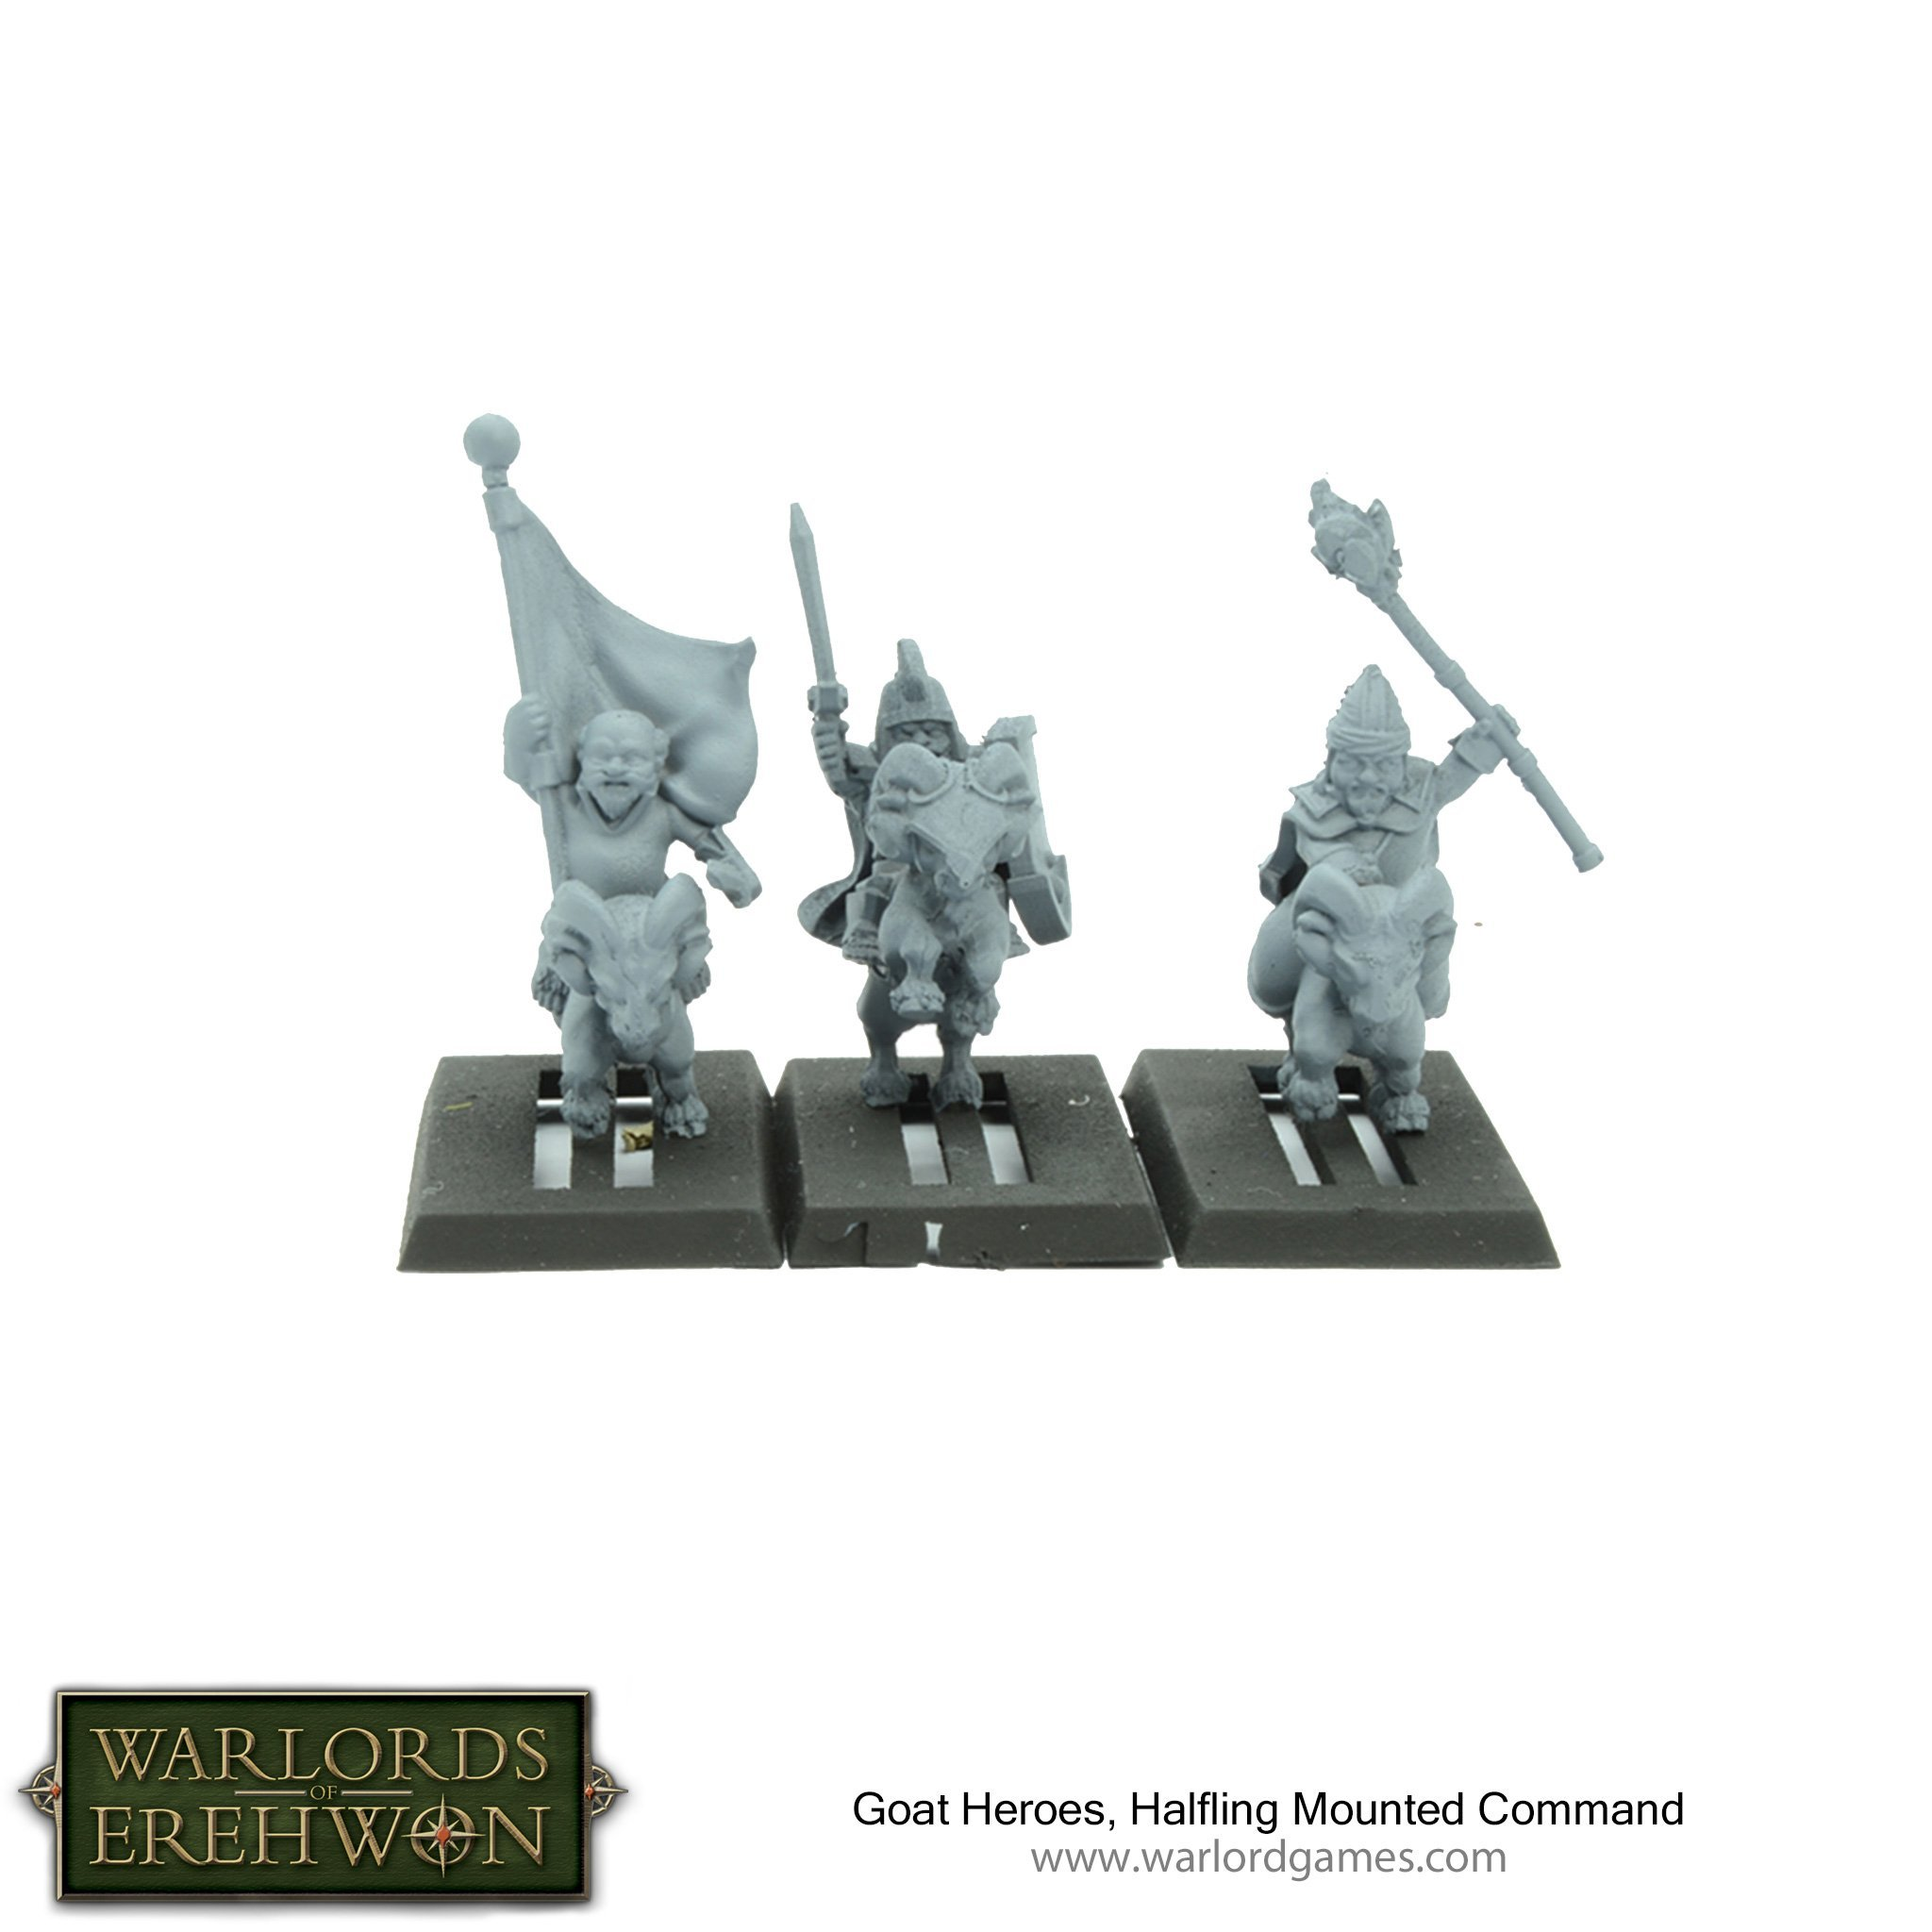 Warlords of Erehwon: Halfling Goat Rider Heroes and Command